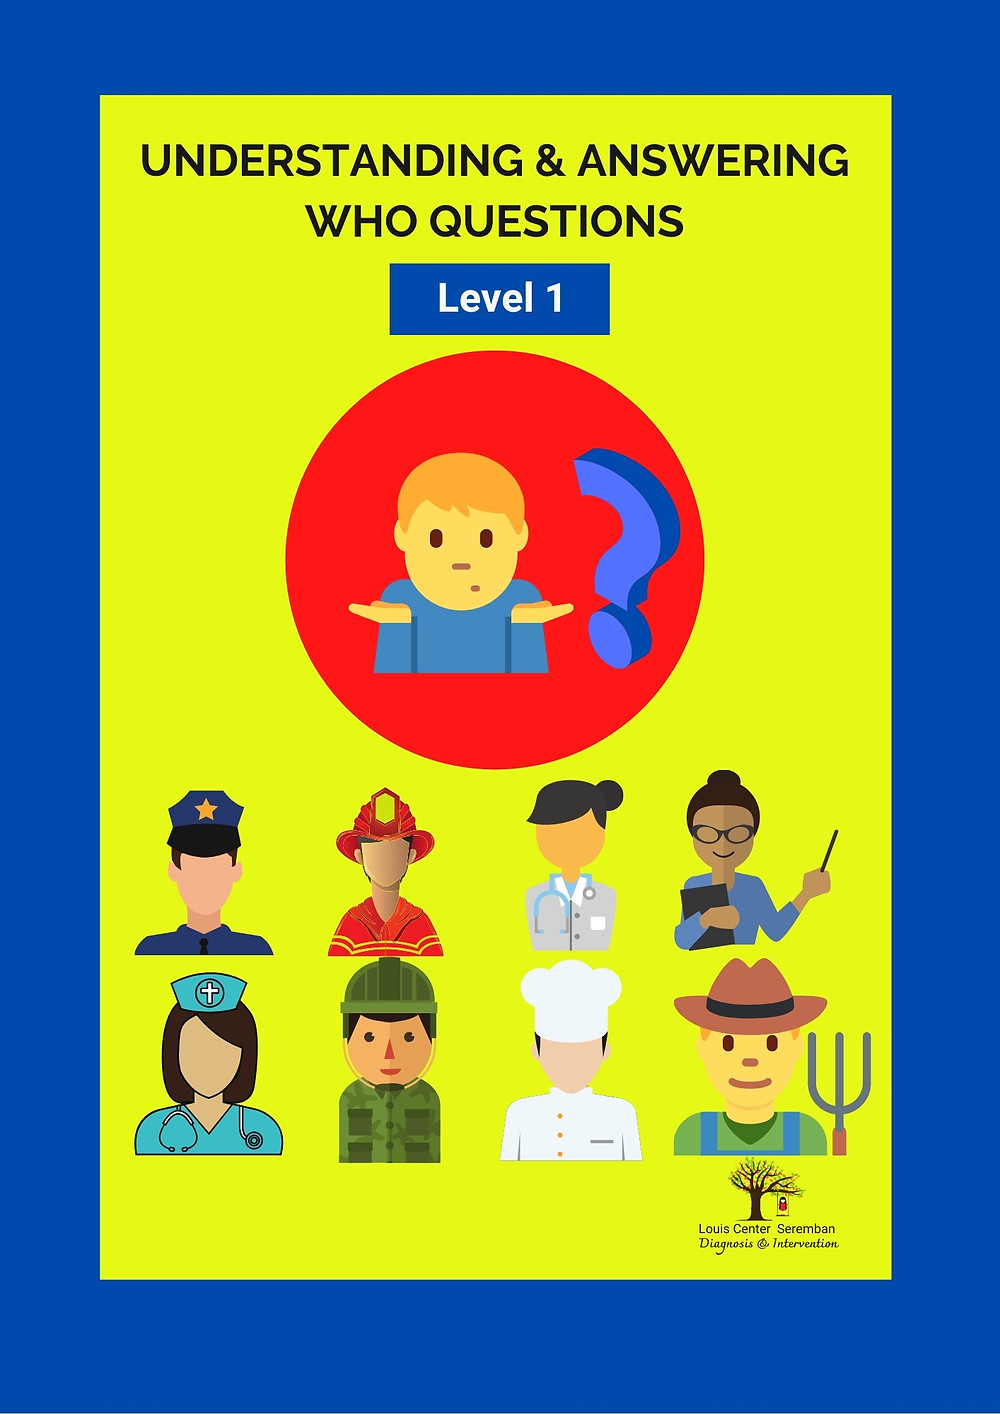 """Louis Center Seremban's Speech Therapy Toolkit : Responding to """"who question"""" in relation to community workers"""